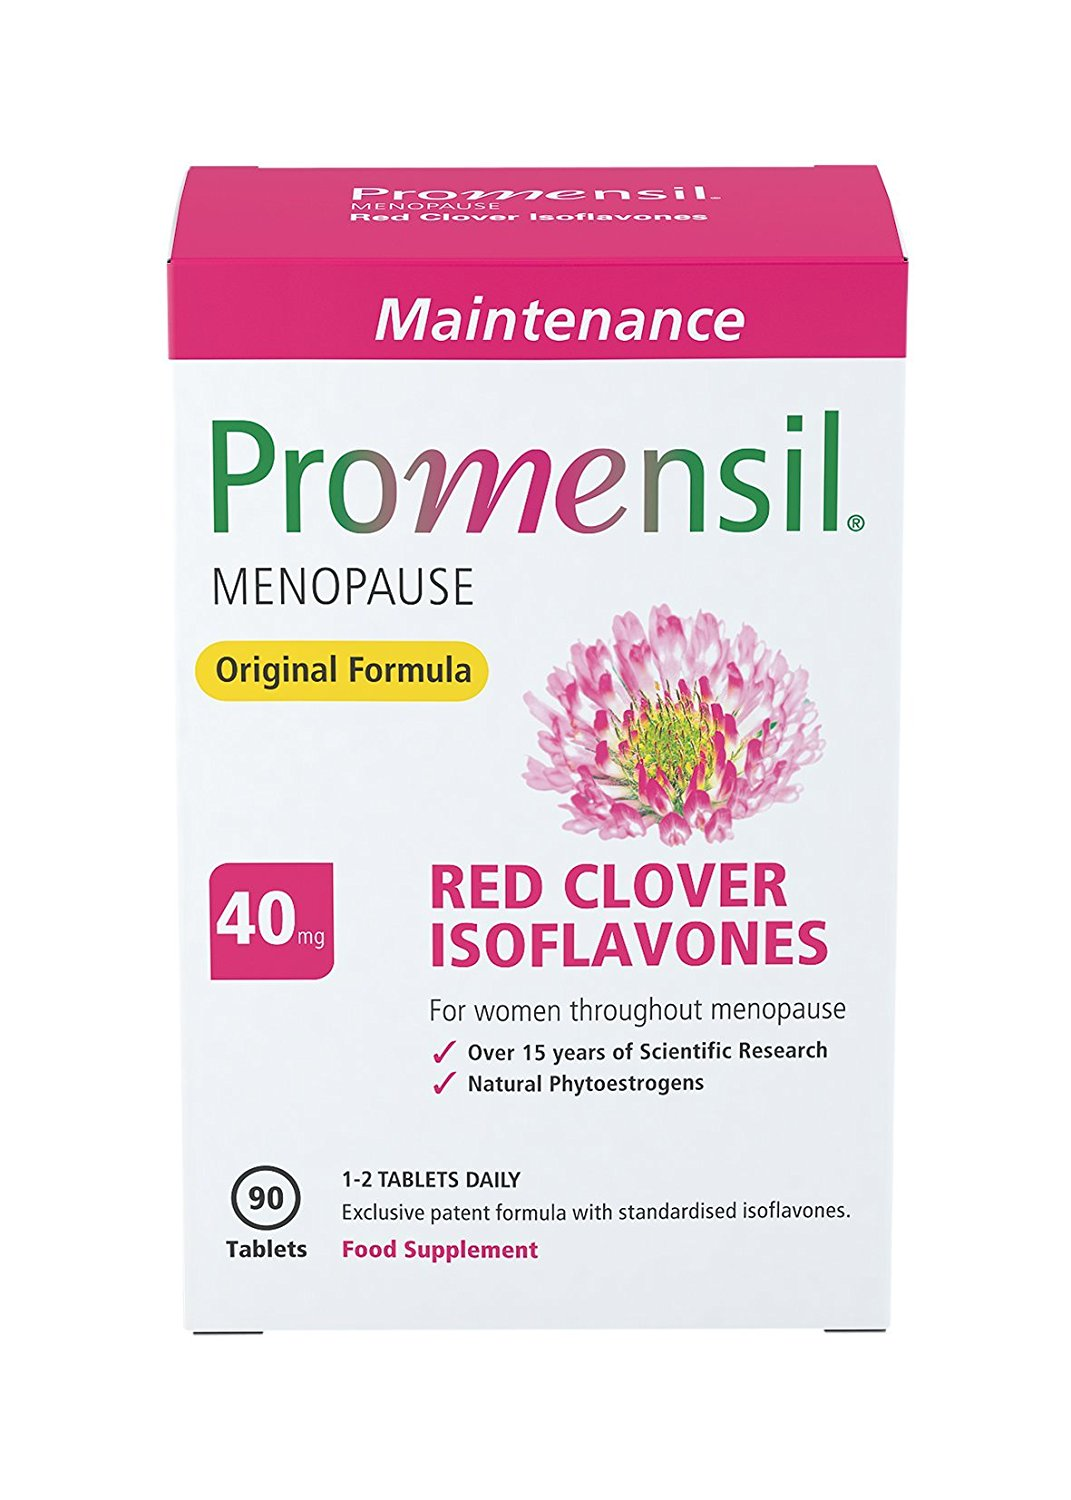 Red clover and menopause